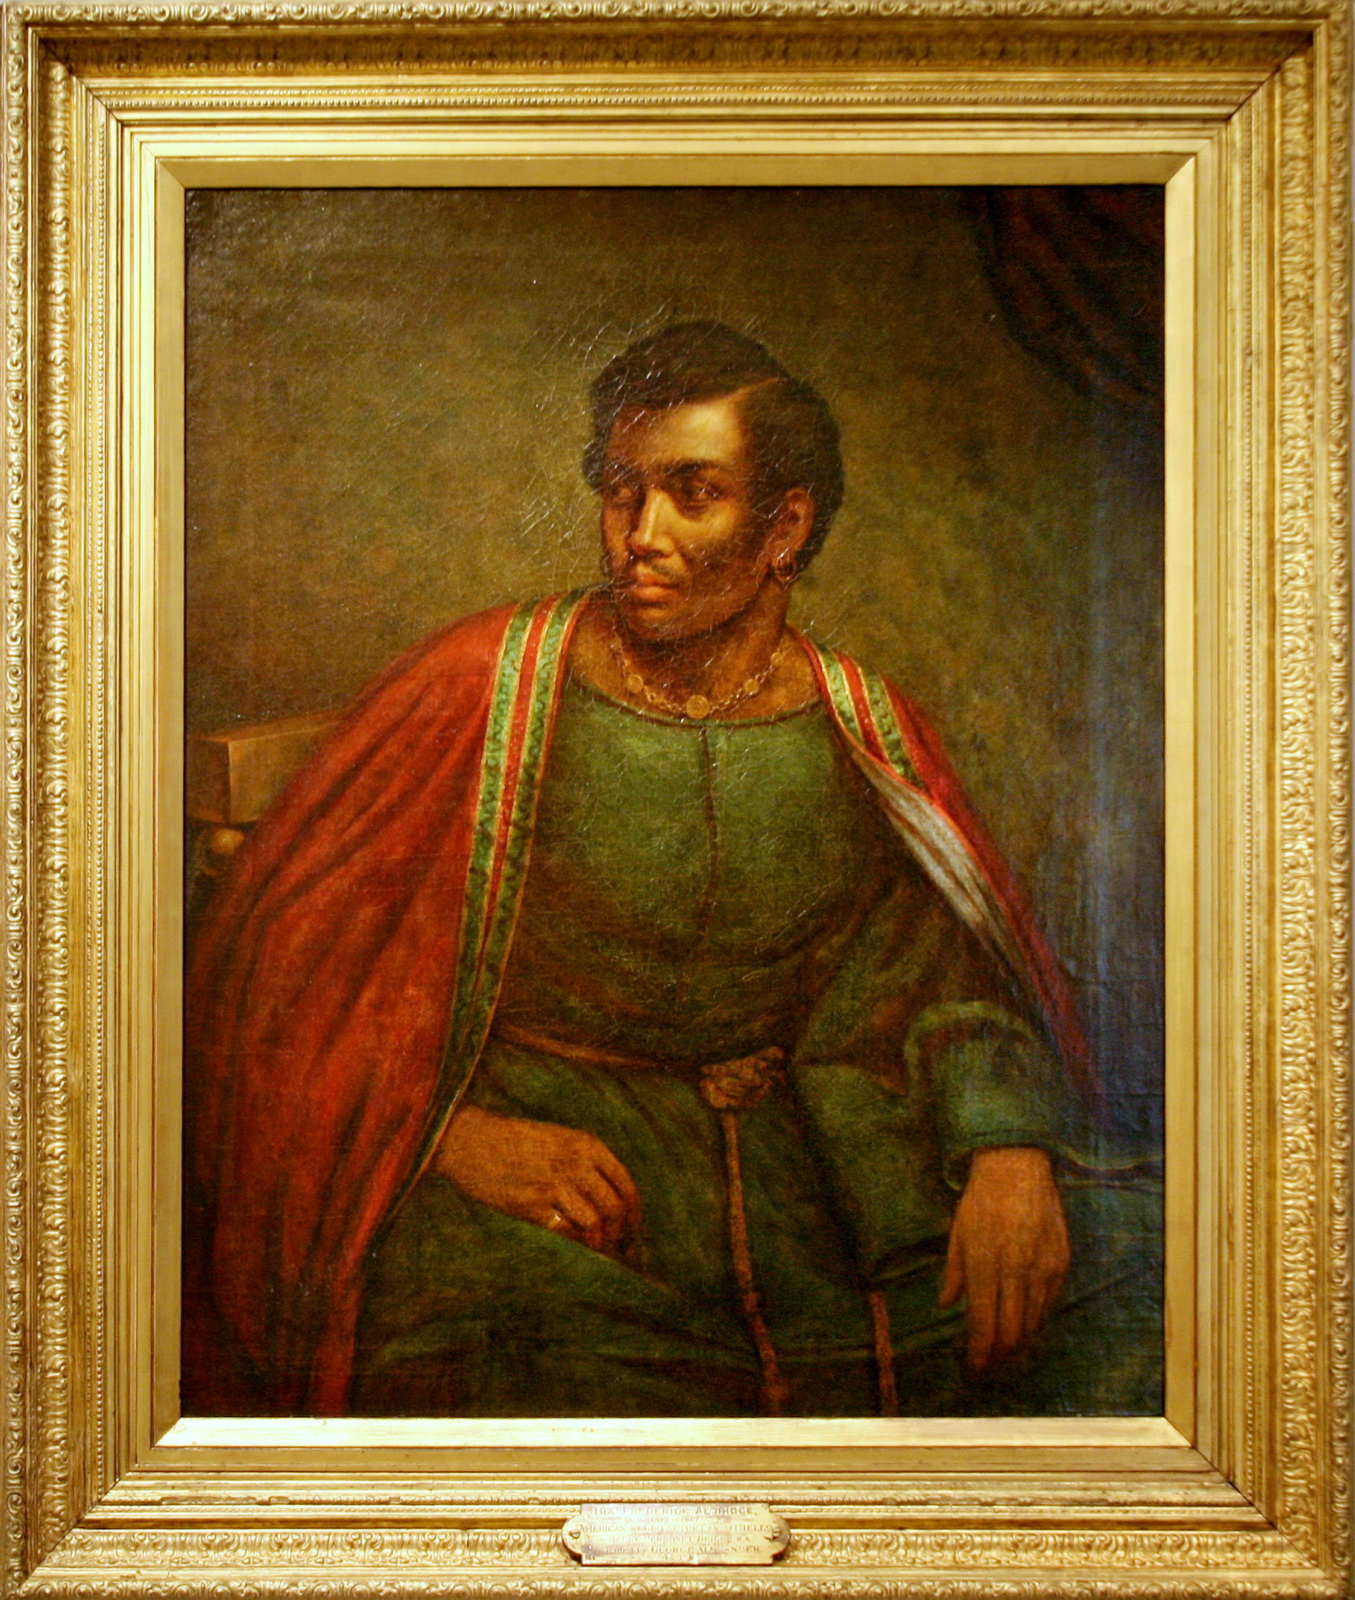 <b>Othello, 1830</b>     	</br>Oil painting of Ira Aldridge as Othello, c.a. 1830</br><br/><b>Source: </b><i>Ira Aldridge as Othello by Henry Perronet Briggs, owned by the National Portrait Gallery, Smithsonian Institution, published by Cliff (cliff1066 tm). Available under a Creative Commons Attribution License 2.0 at http://www.flickr.com/photos/28567825@N03/3429415090/in/photolist-6e3DCo-6e3DYq-6GoGpw-dWsmRh-dWmHRB</i>